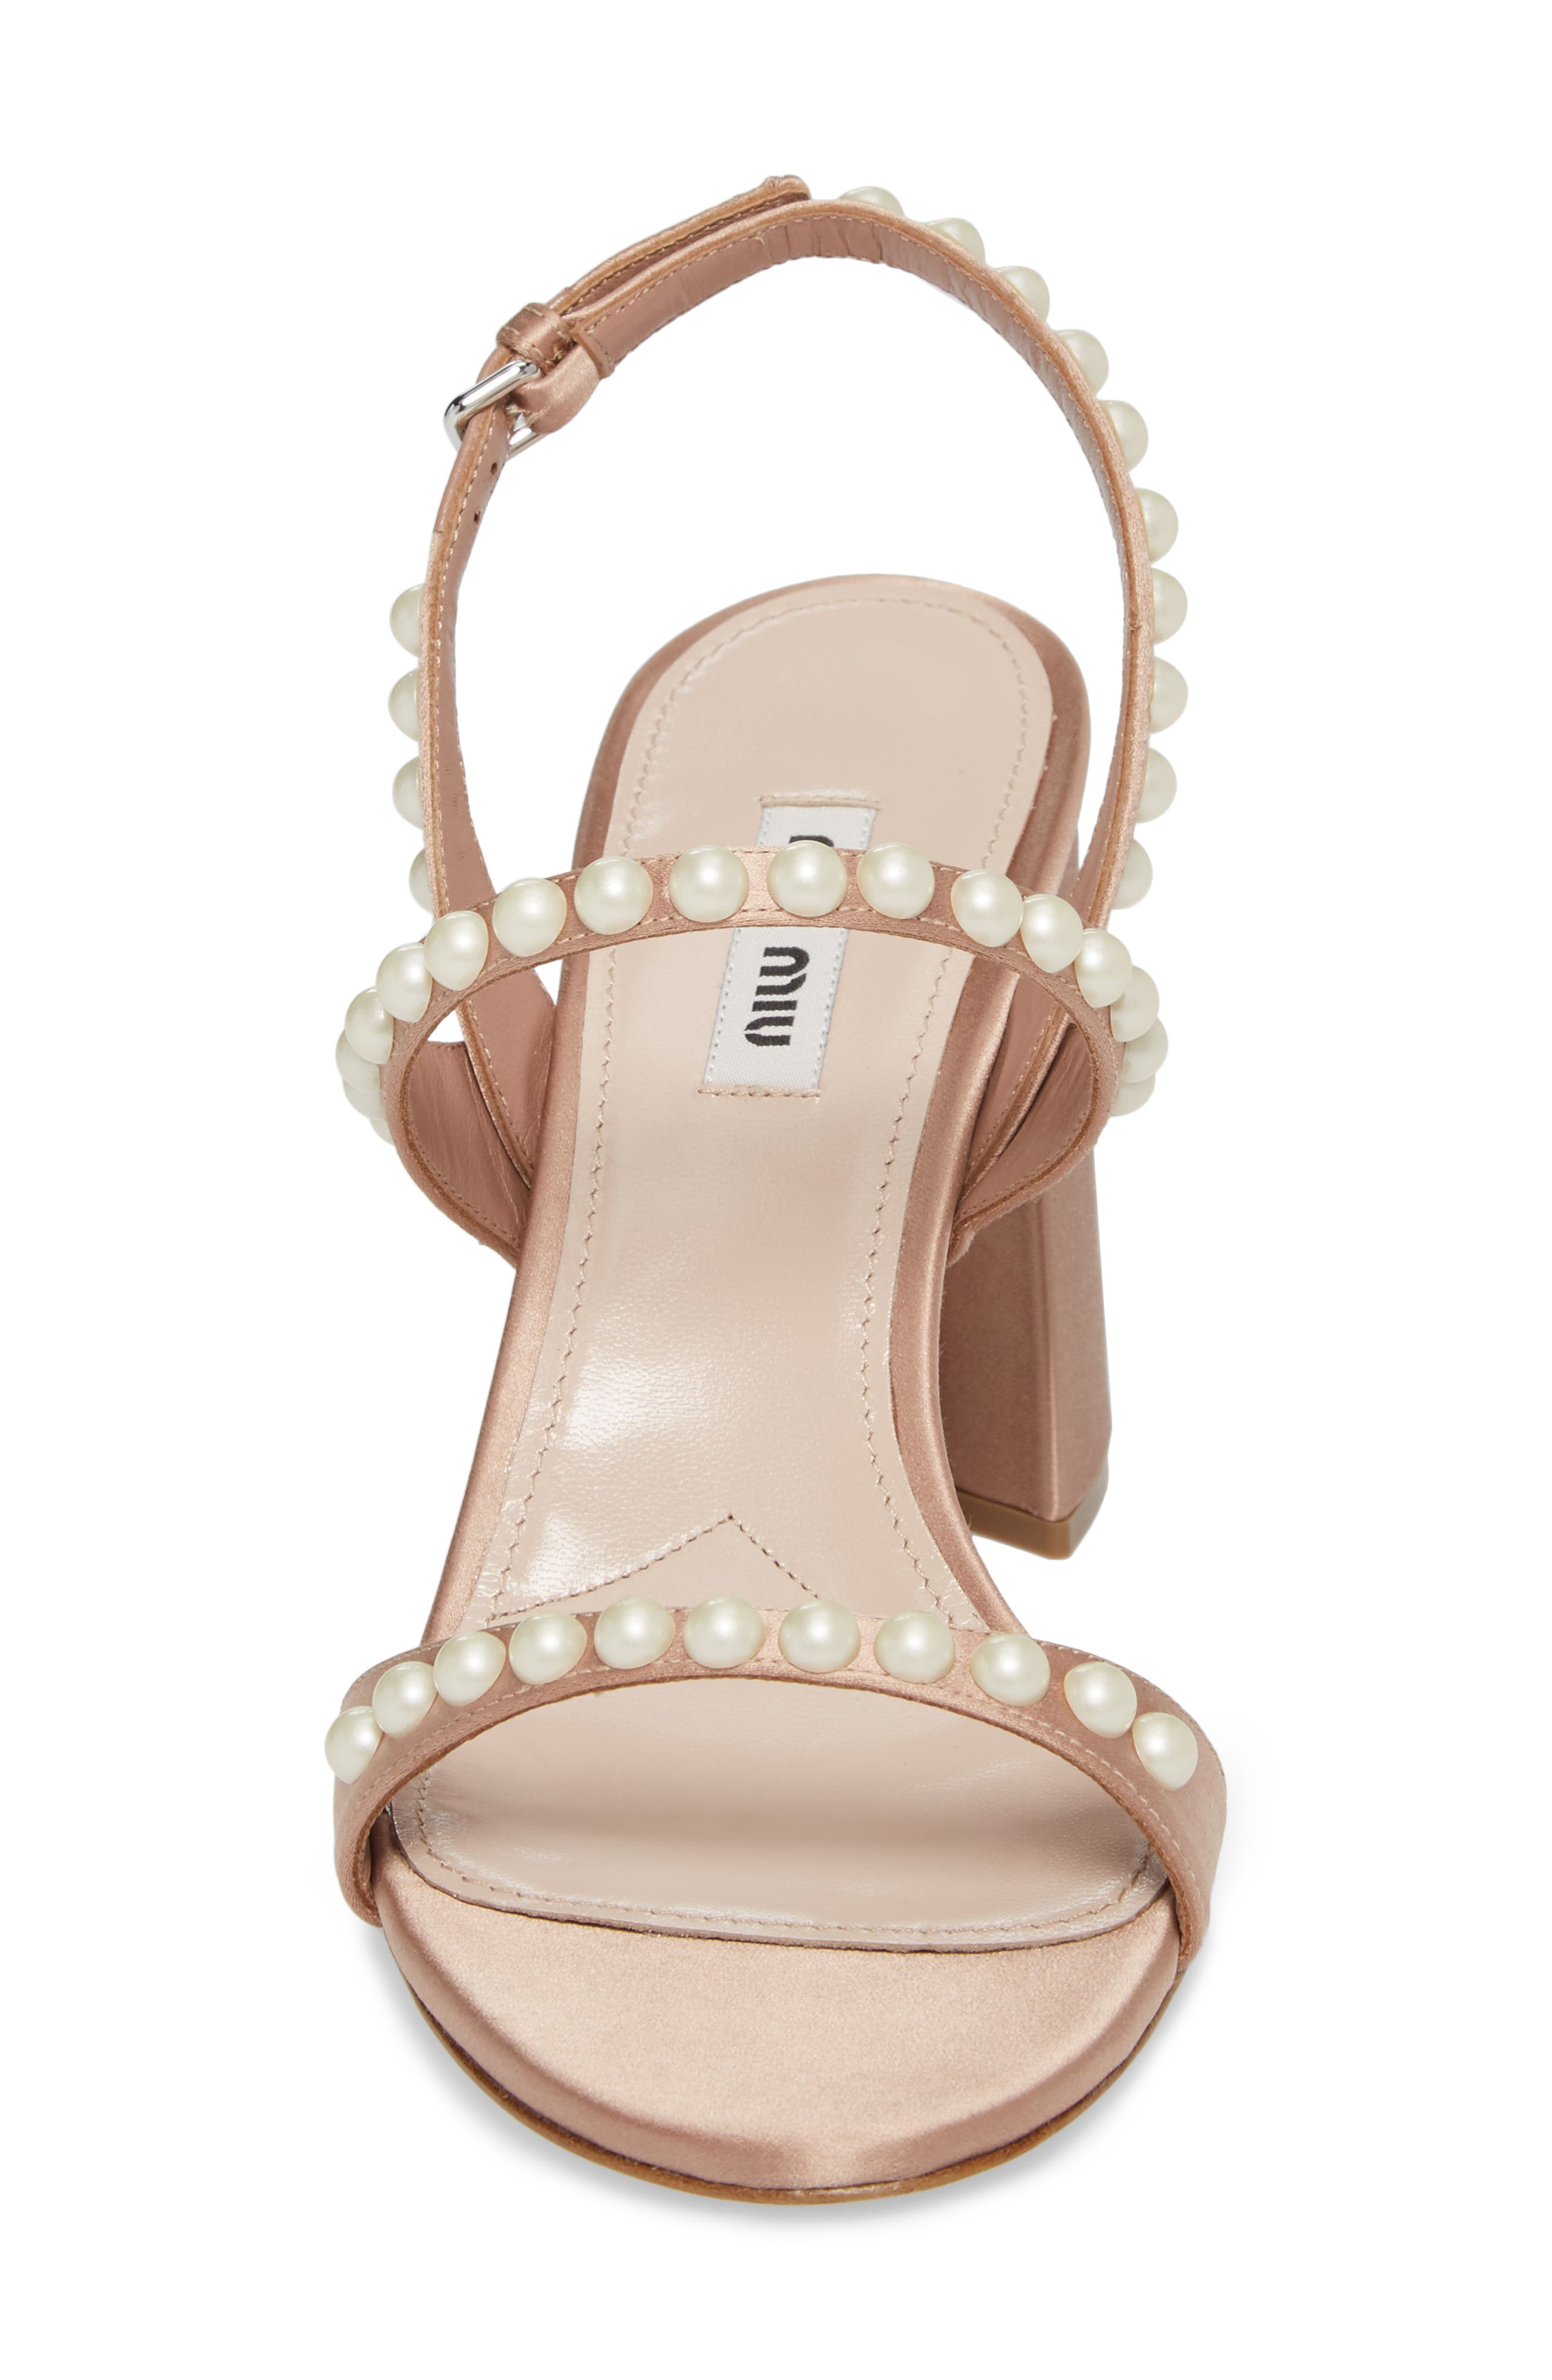 Imitation Pearl Slingback Sandal,                             Alternate thumbnail 4, color,                             250